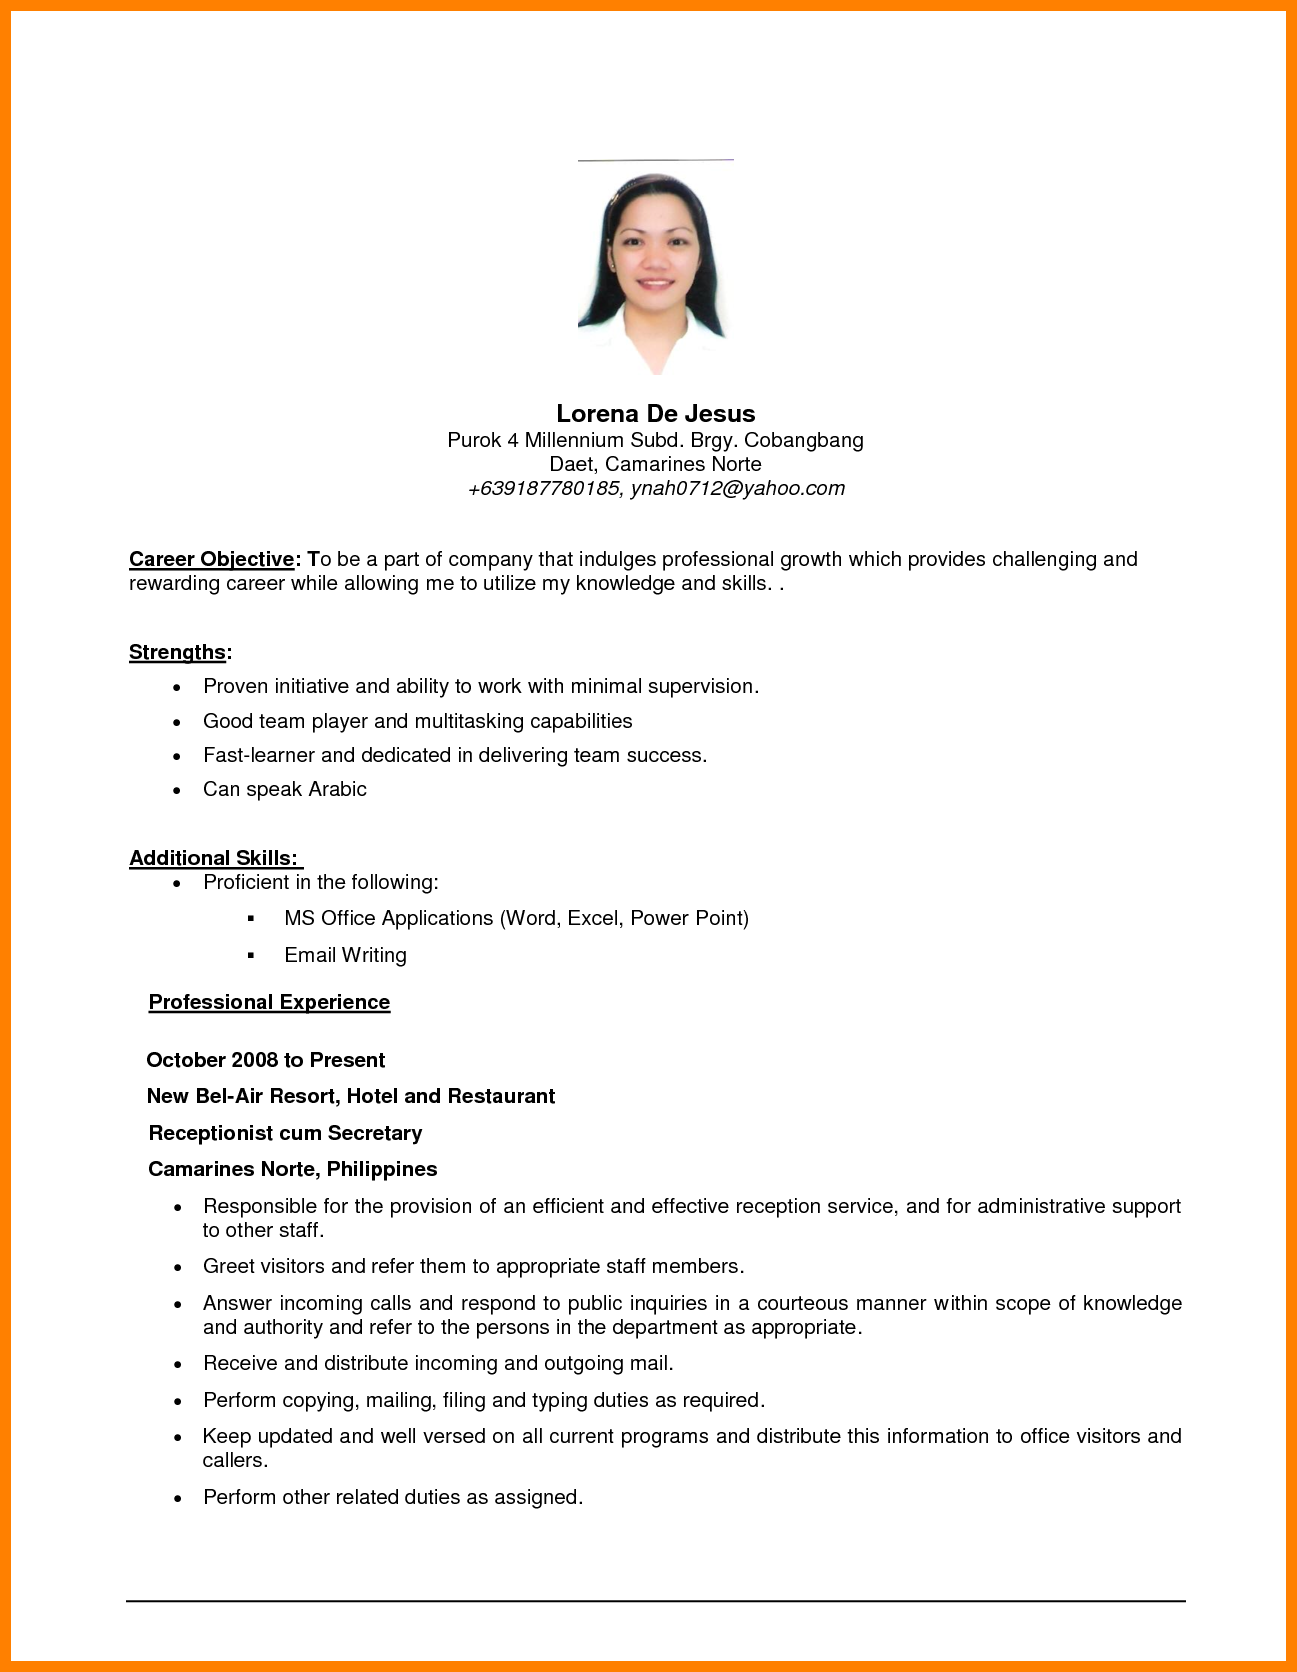 Resume Objective Resume Objective Sample Computer Skills Examples For Example Your